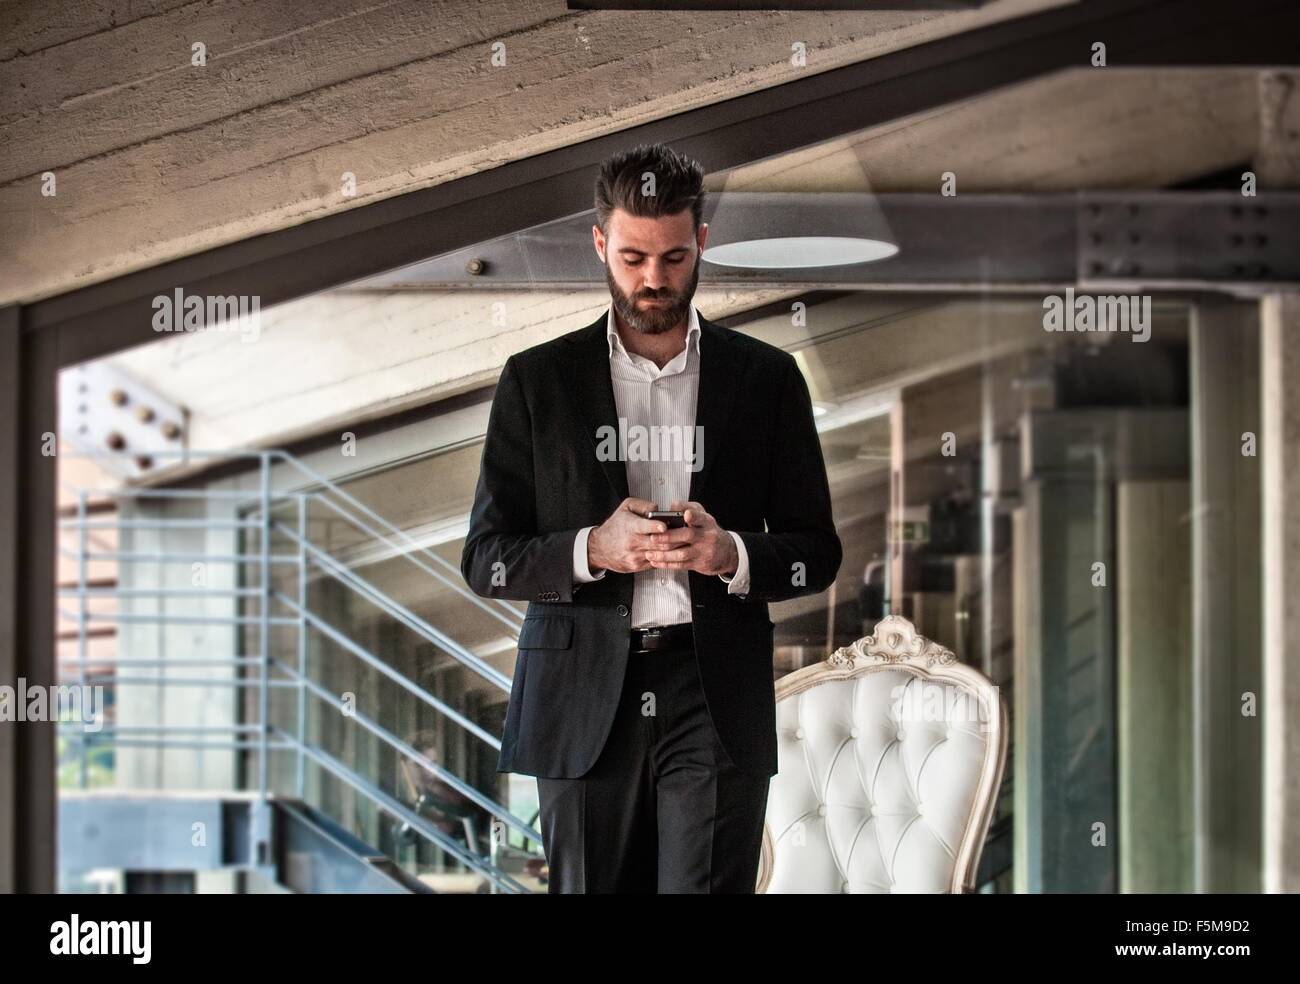 Mid adult man wearing suit holding smartphone looking down - Stock Image